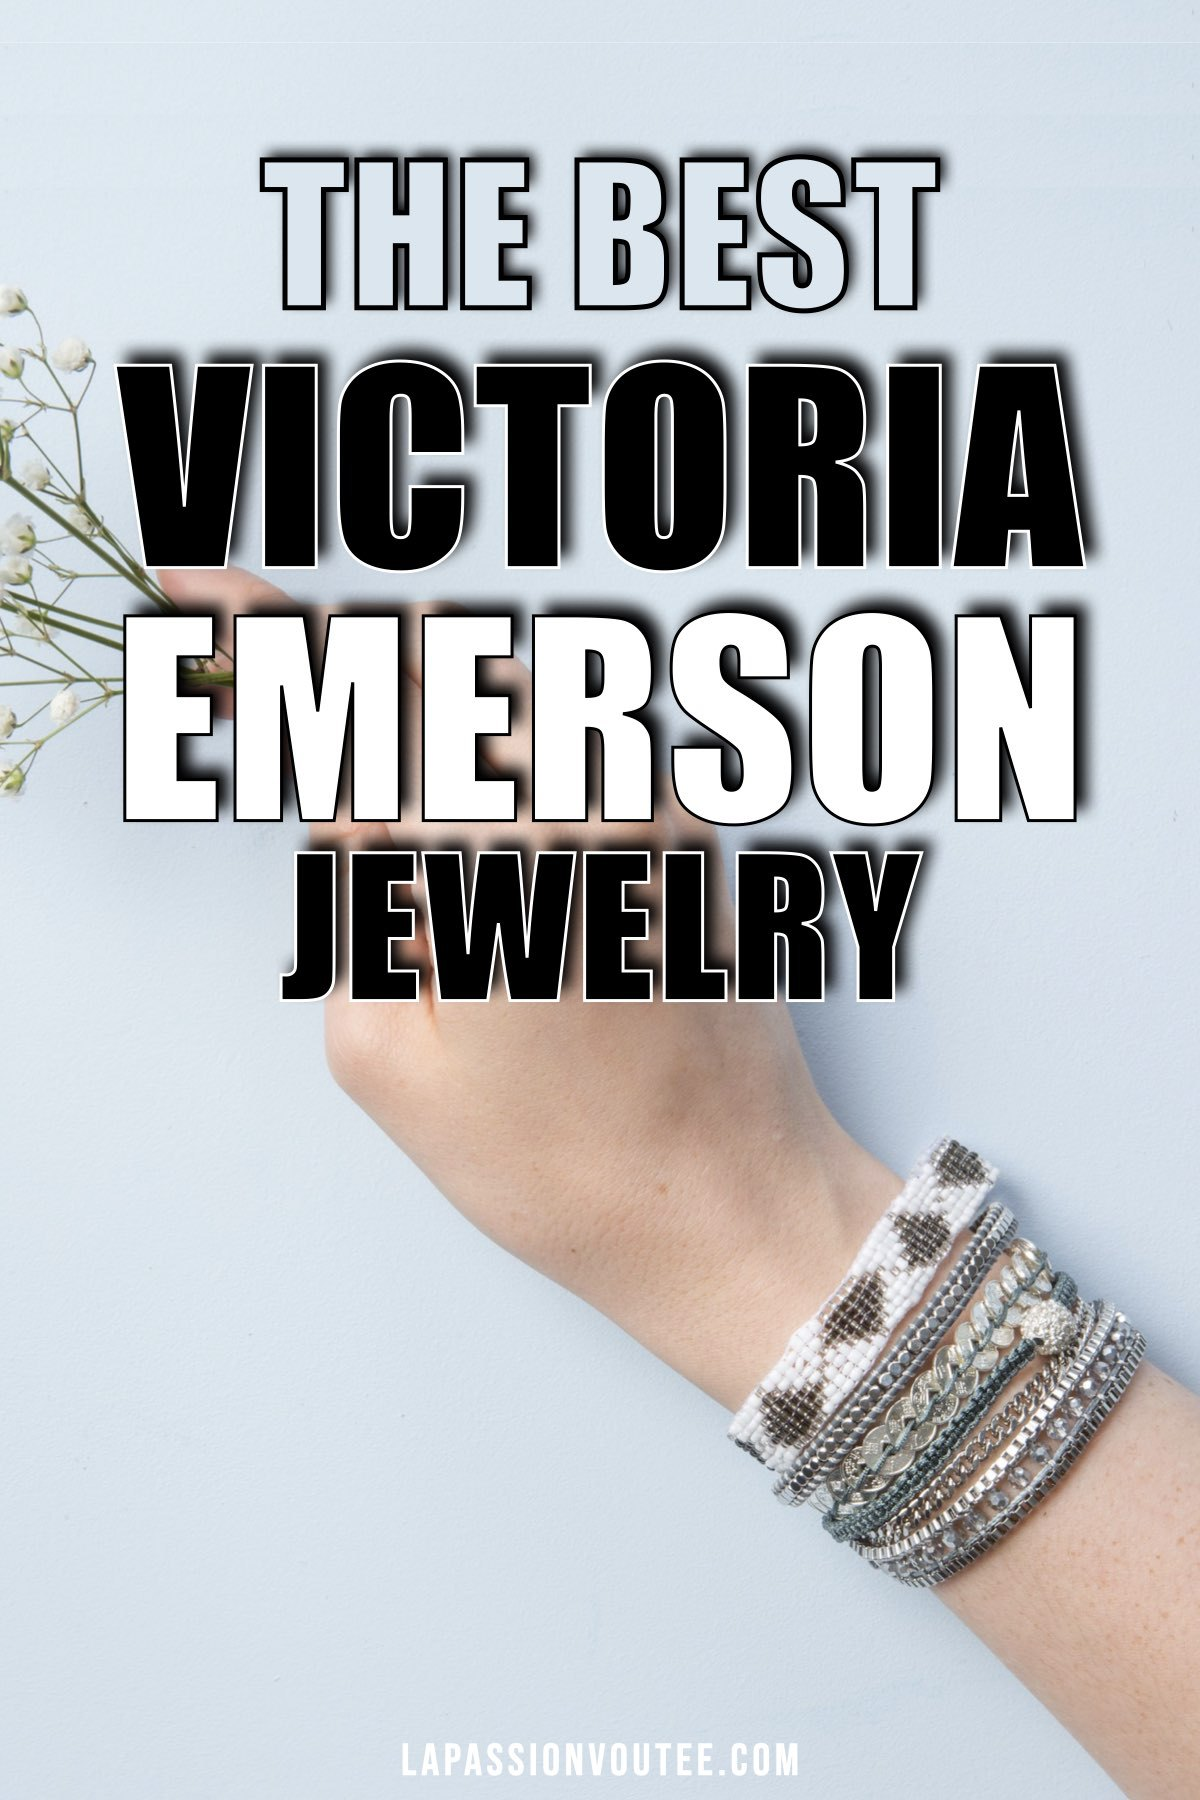 Wrap bracelets are hot this season. Sharing the top 15 Victoria Emerson jewelry worth getting right now. From the most-wanted boho cuffs and wraps to their zodiac necklaces, Emerson watches, and Apple wraps.